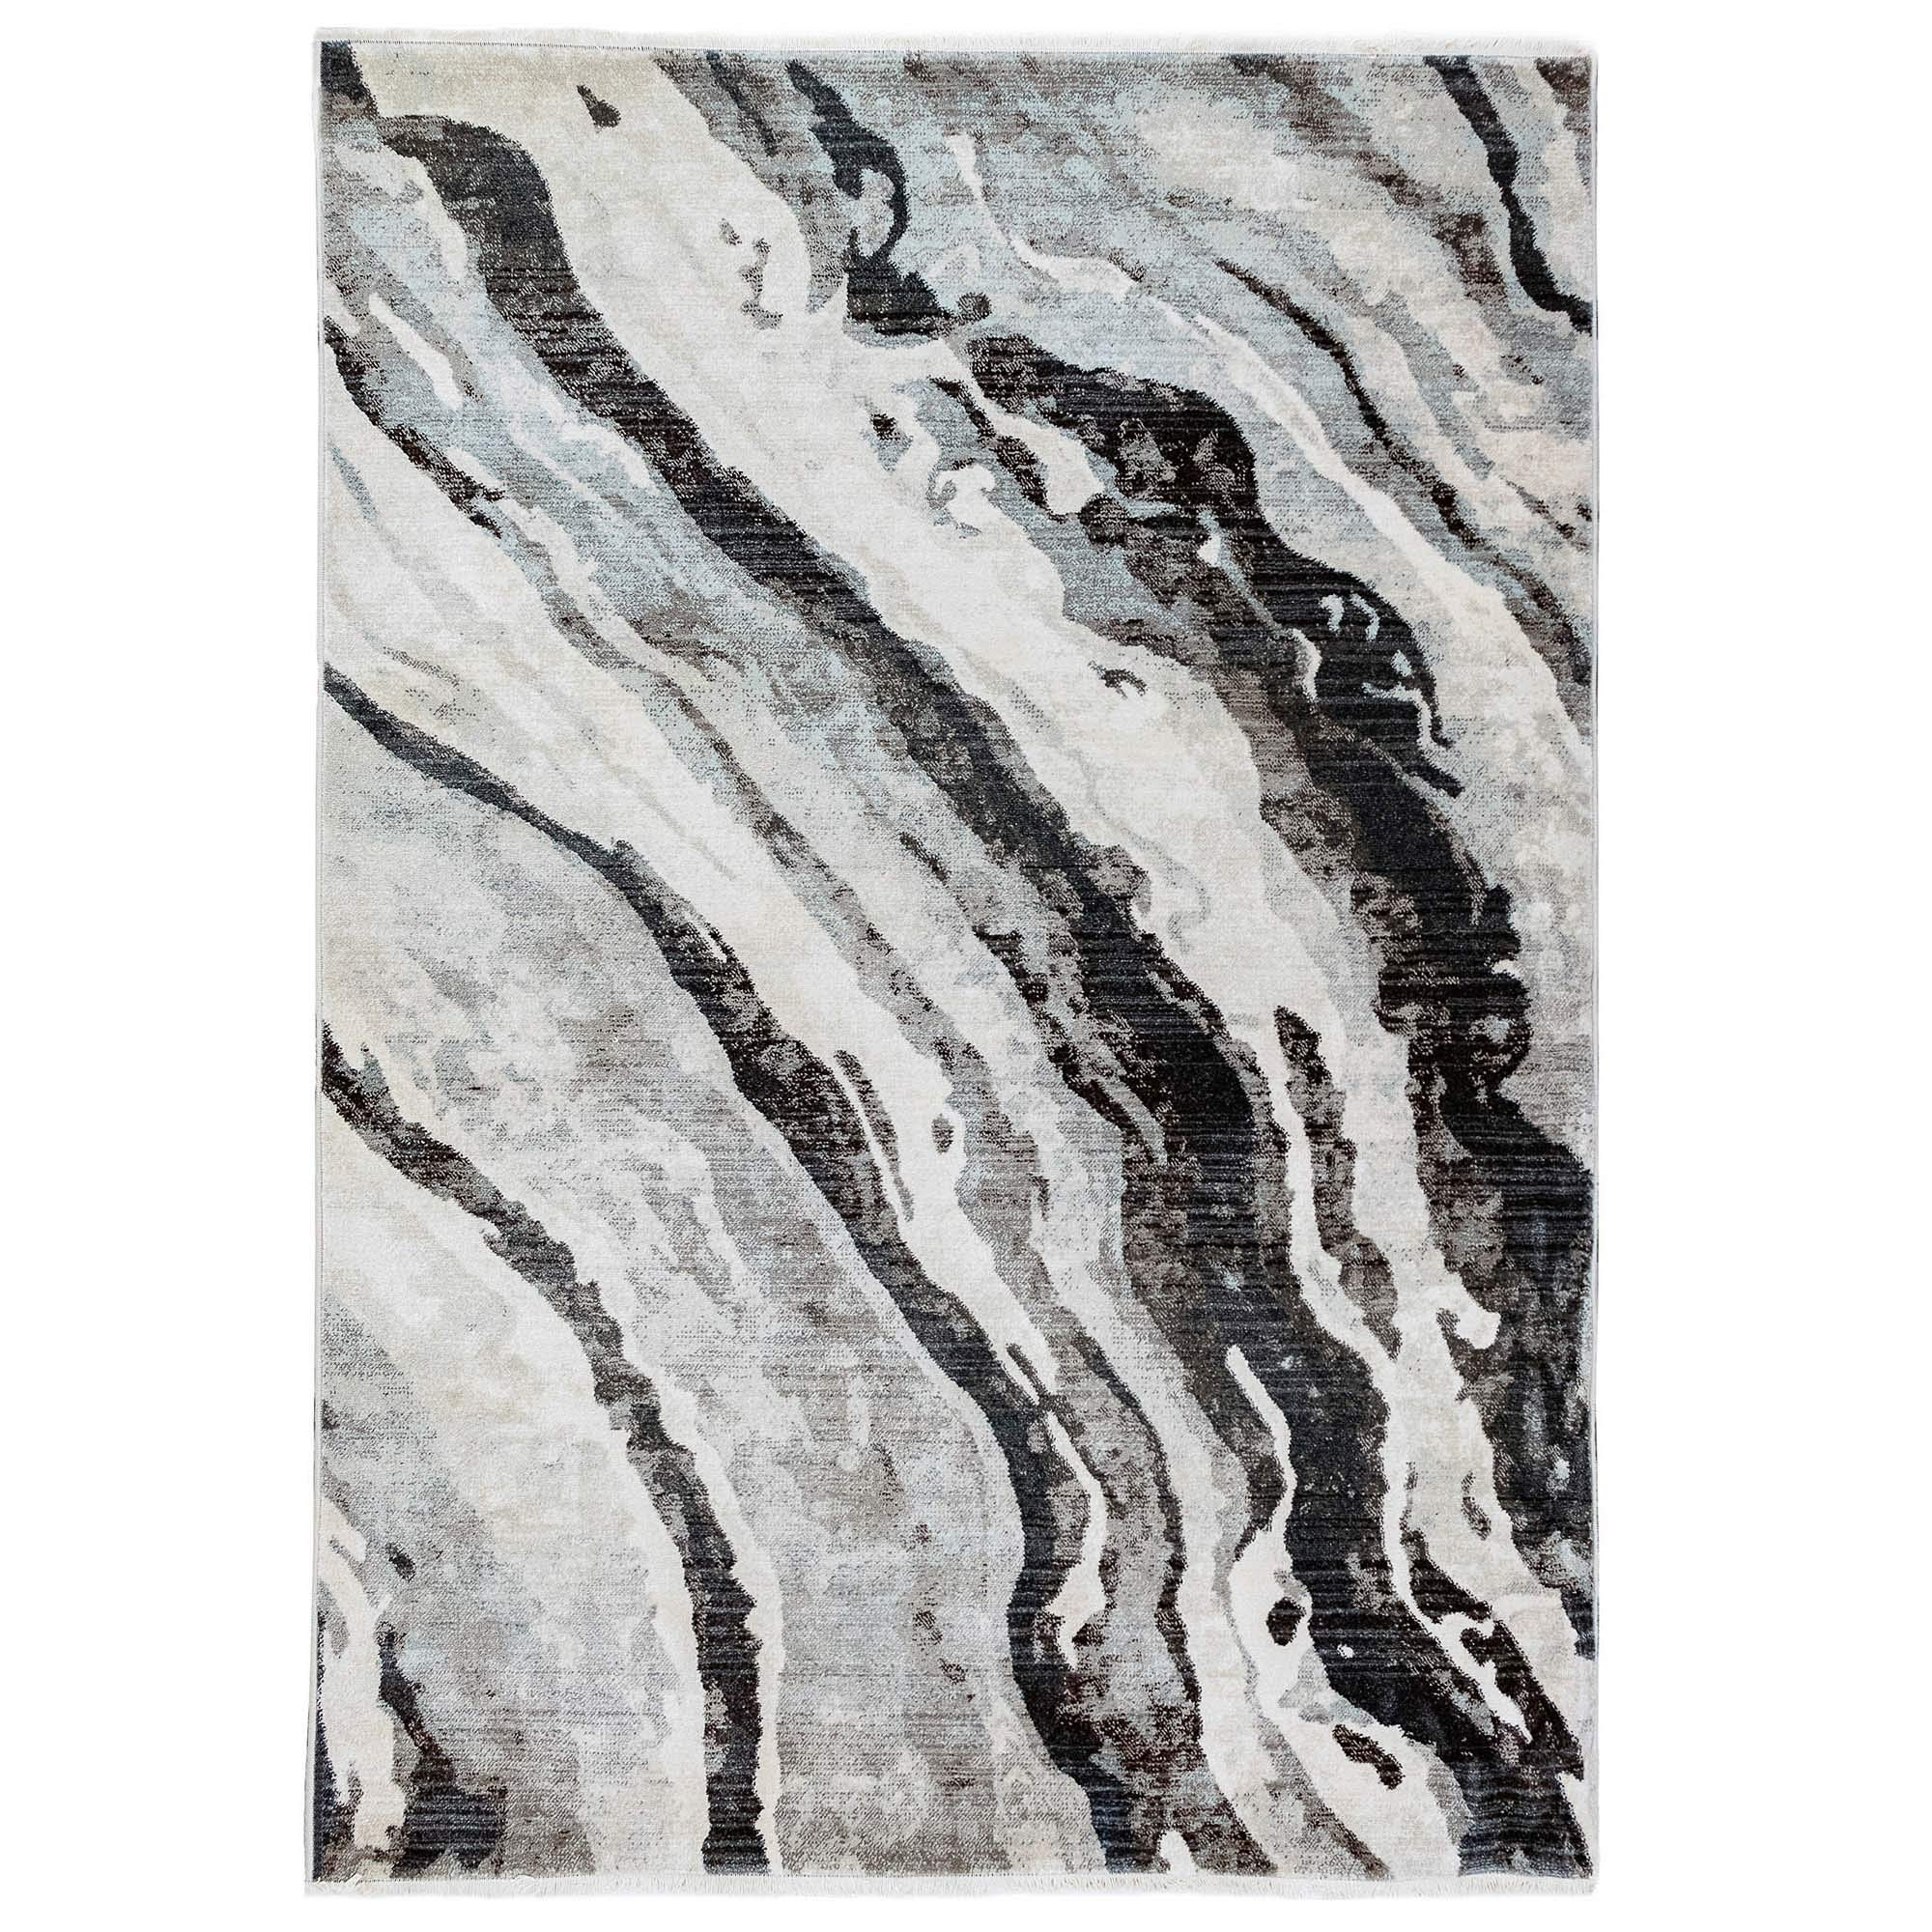 M by Liora B906/47 Classic Weave Canyon Rug, 4'11''X7'5'', Grey